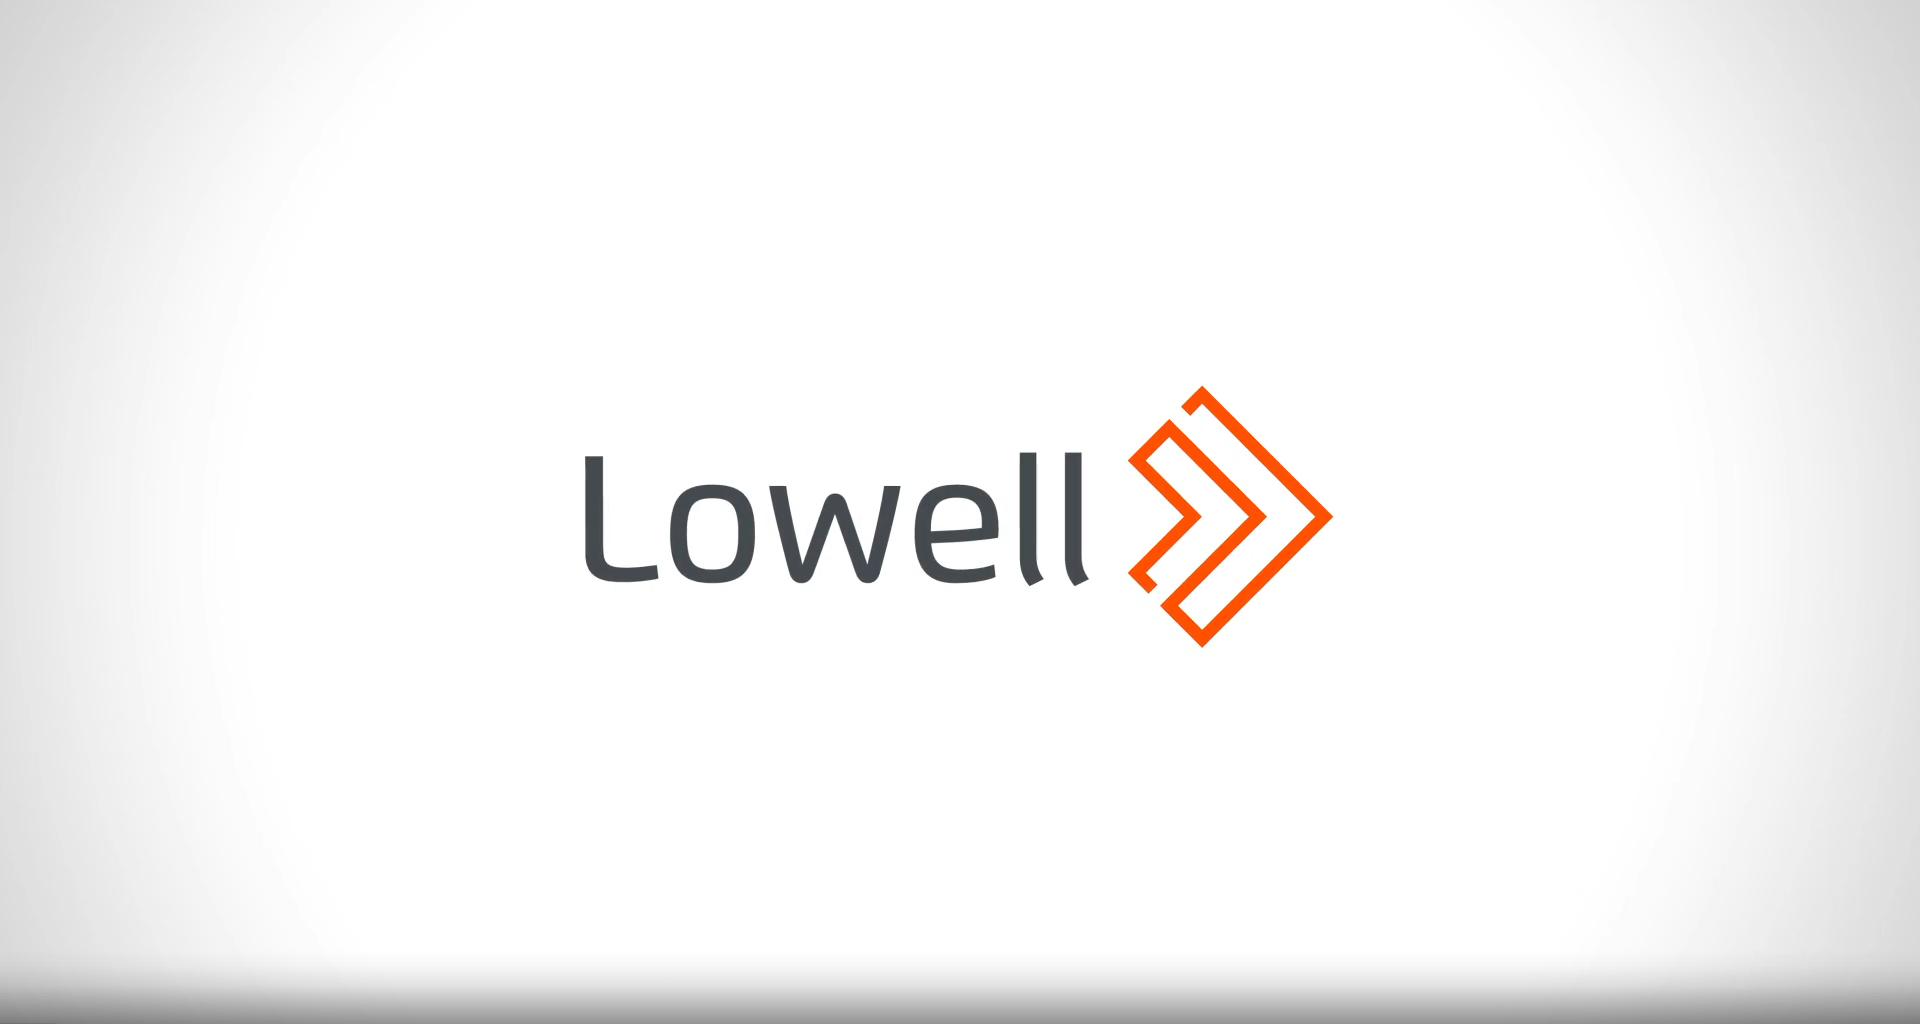 Meet our new app   Lowell